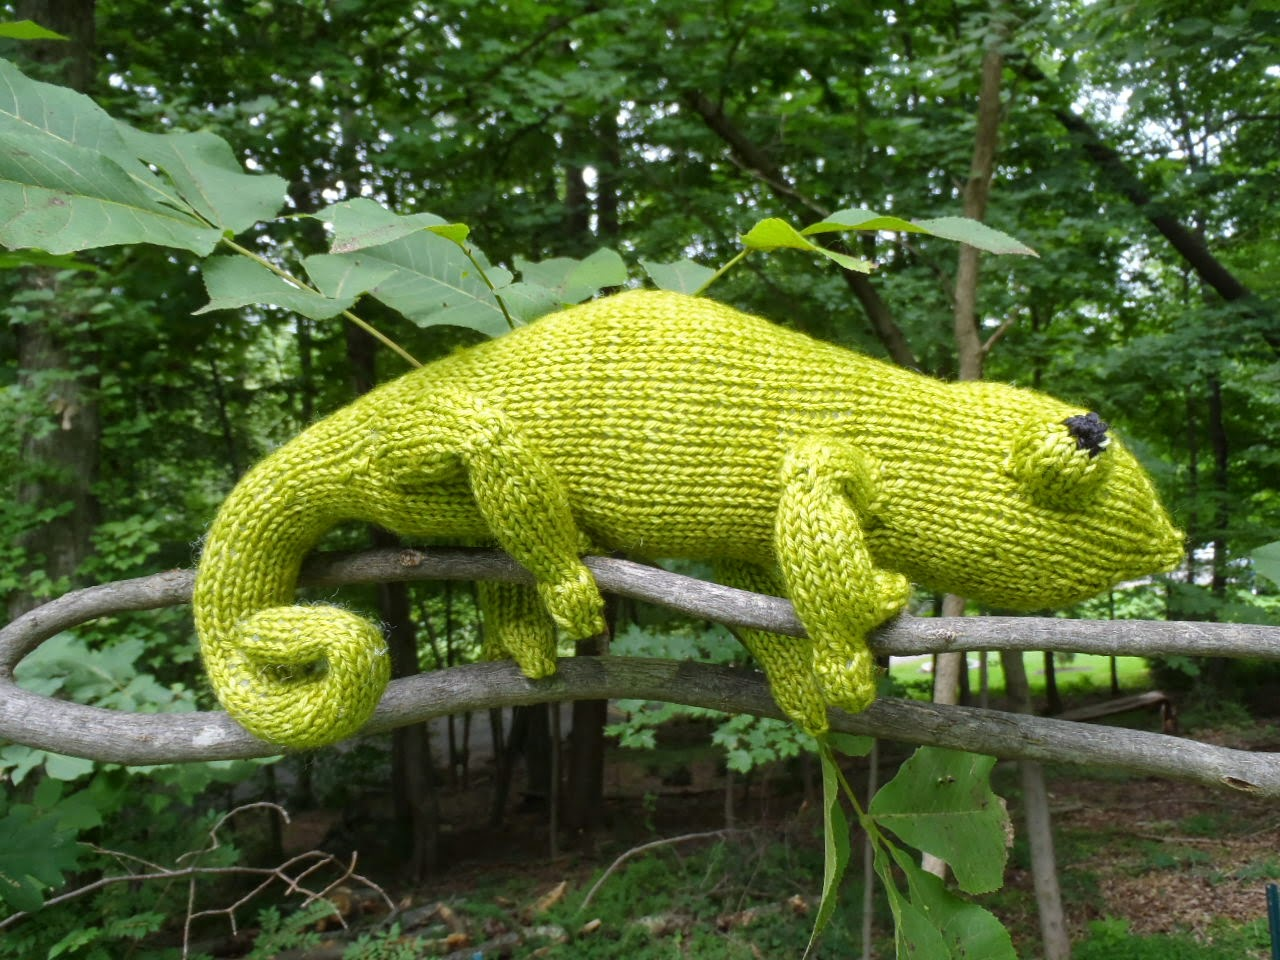 chameleon life cycle diagram tpi wiring stana 39s critters etc knitting pattern for leon